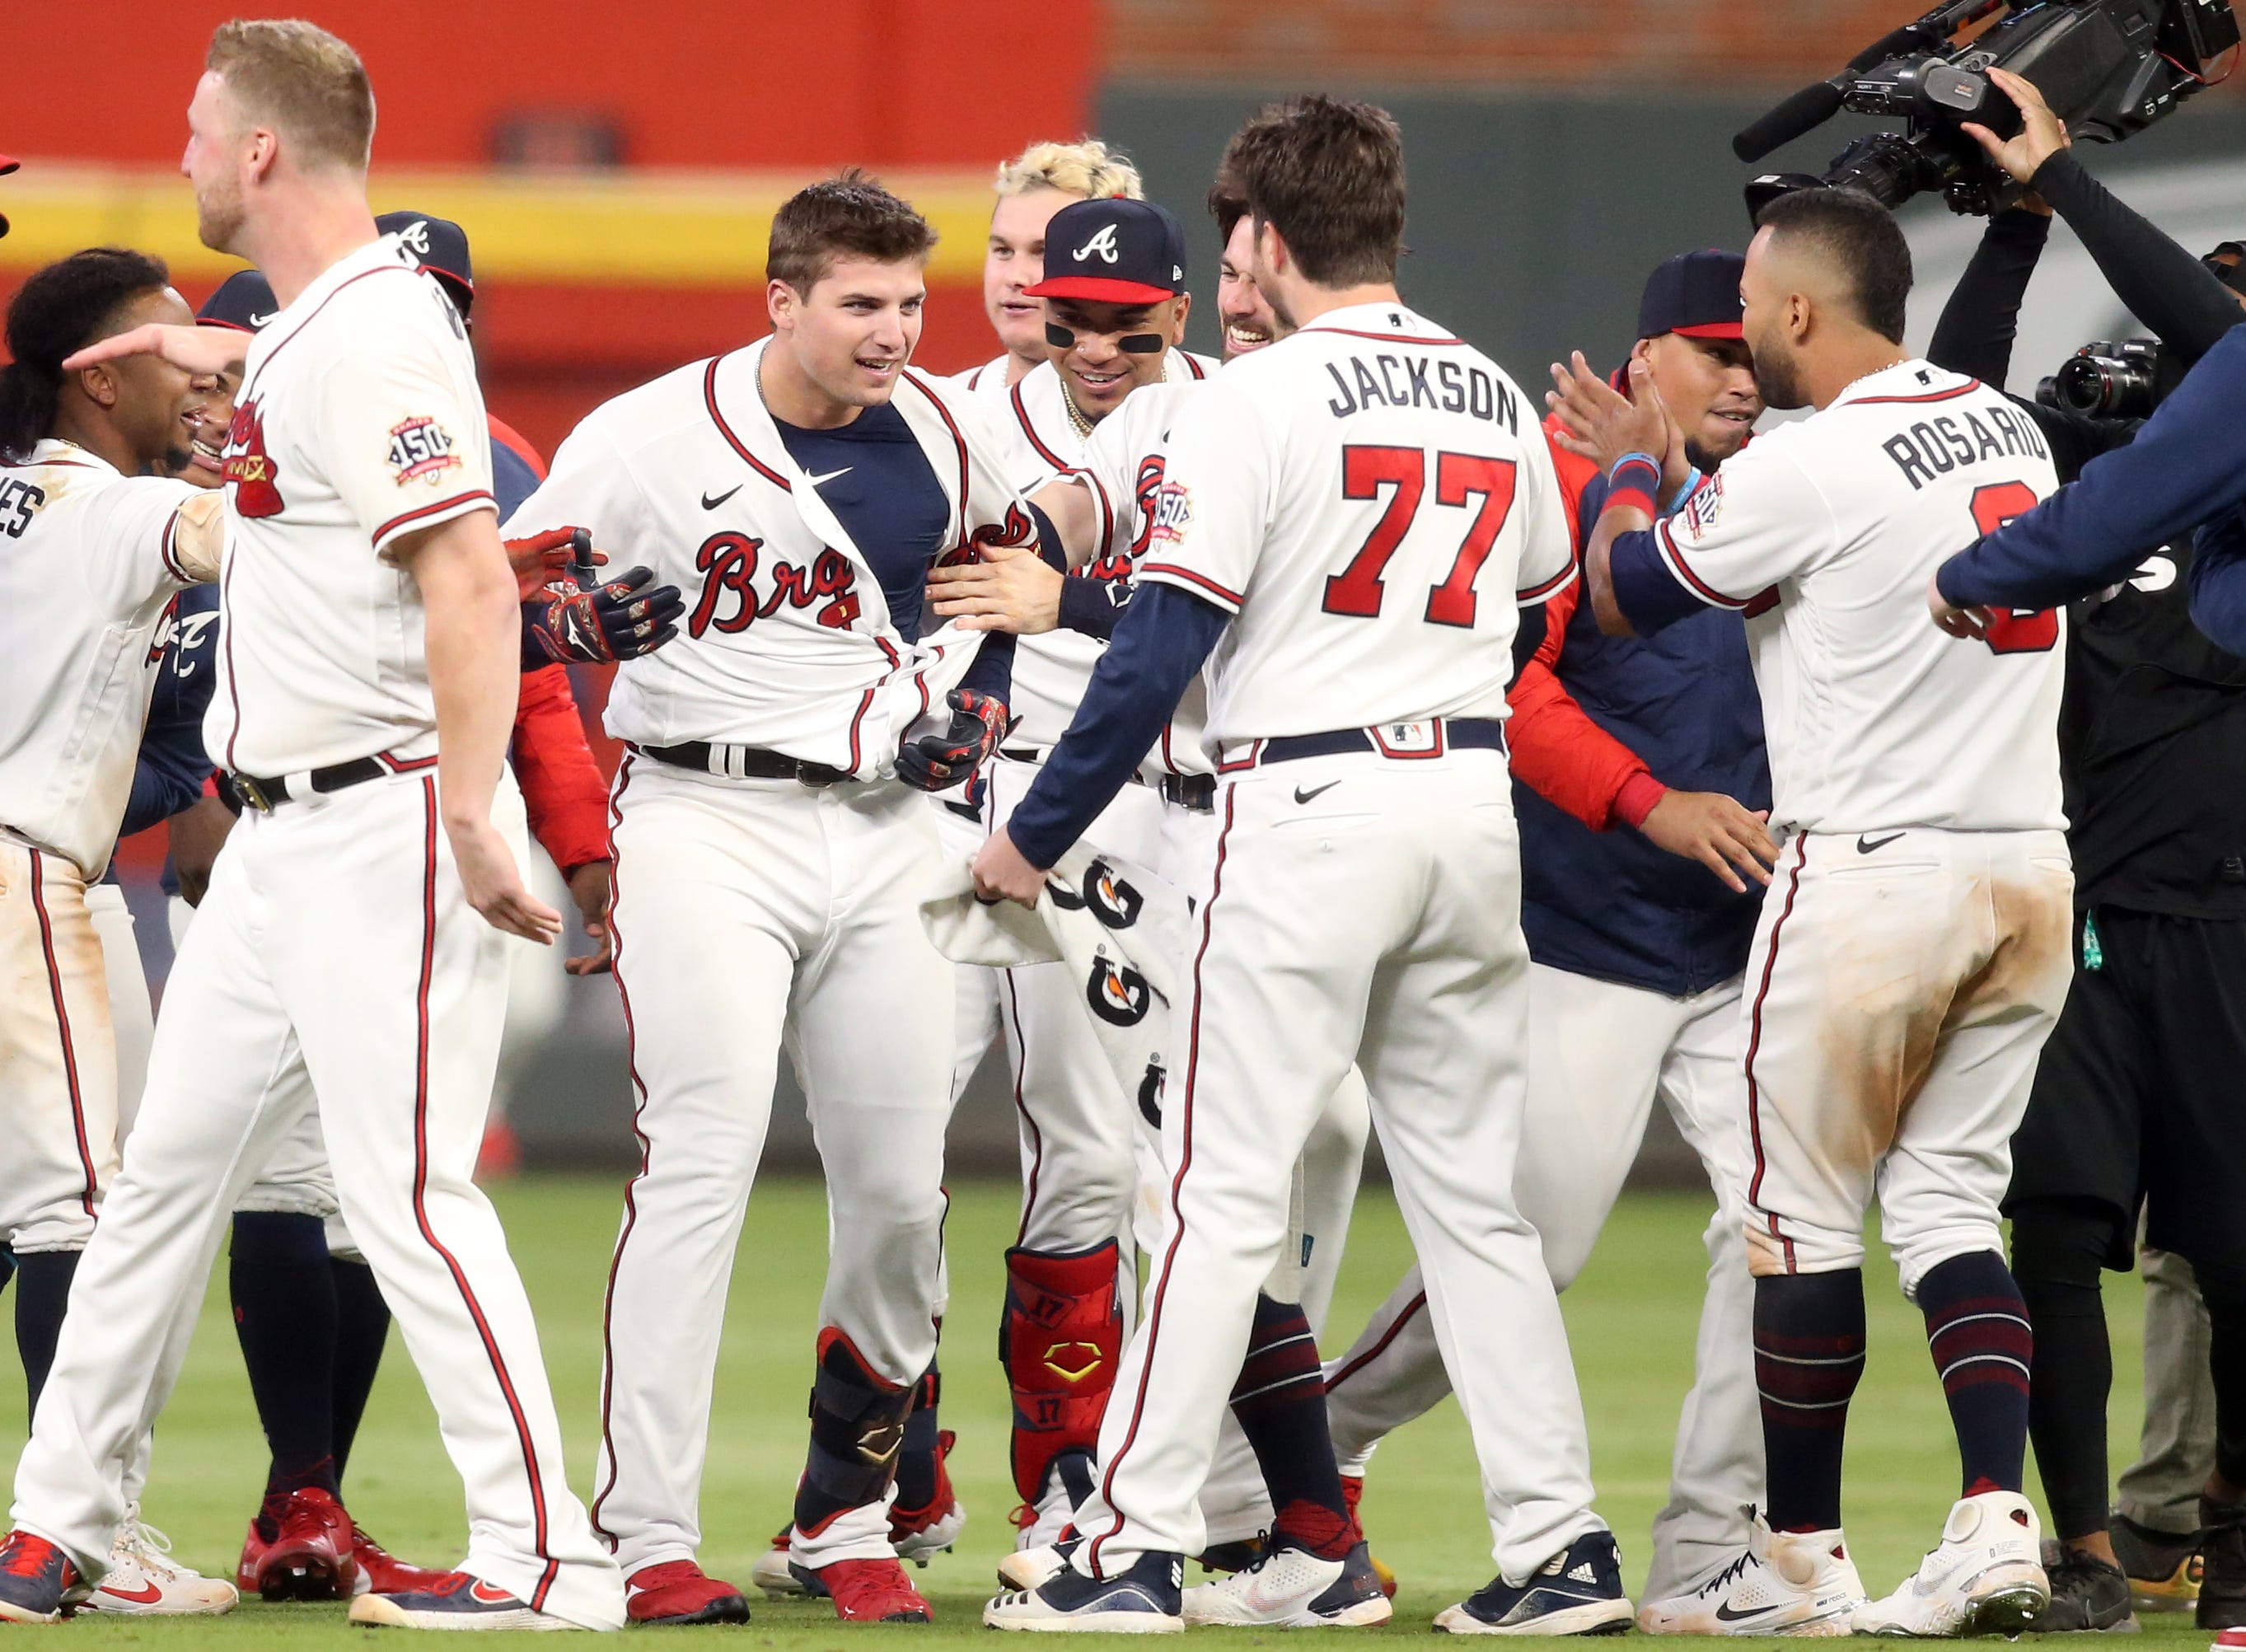 Opinion: Braves win NLCS opener vs. Dodgers, even if they didn t deserve the victory